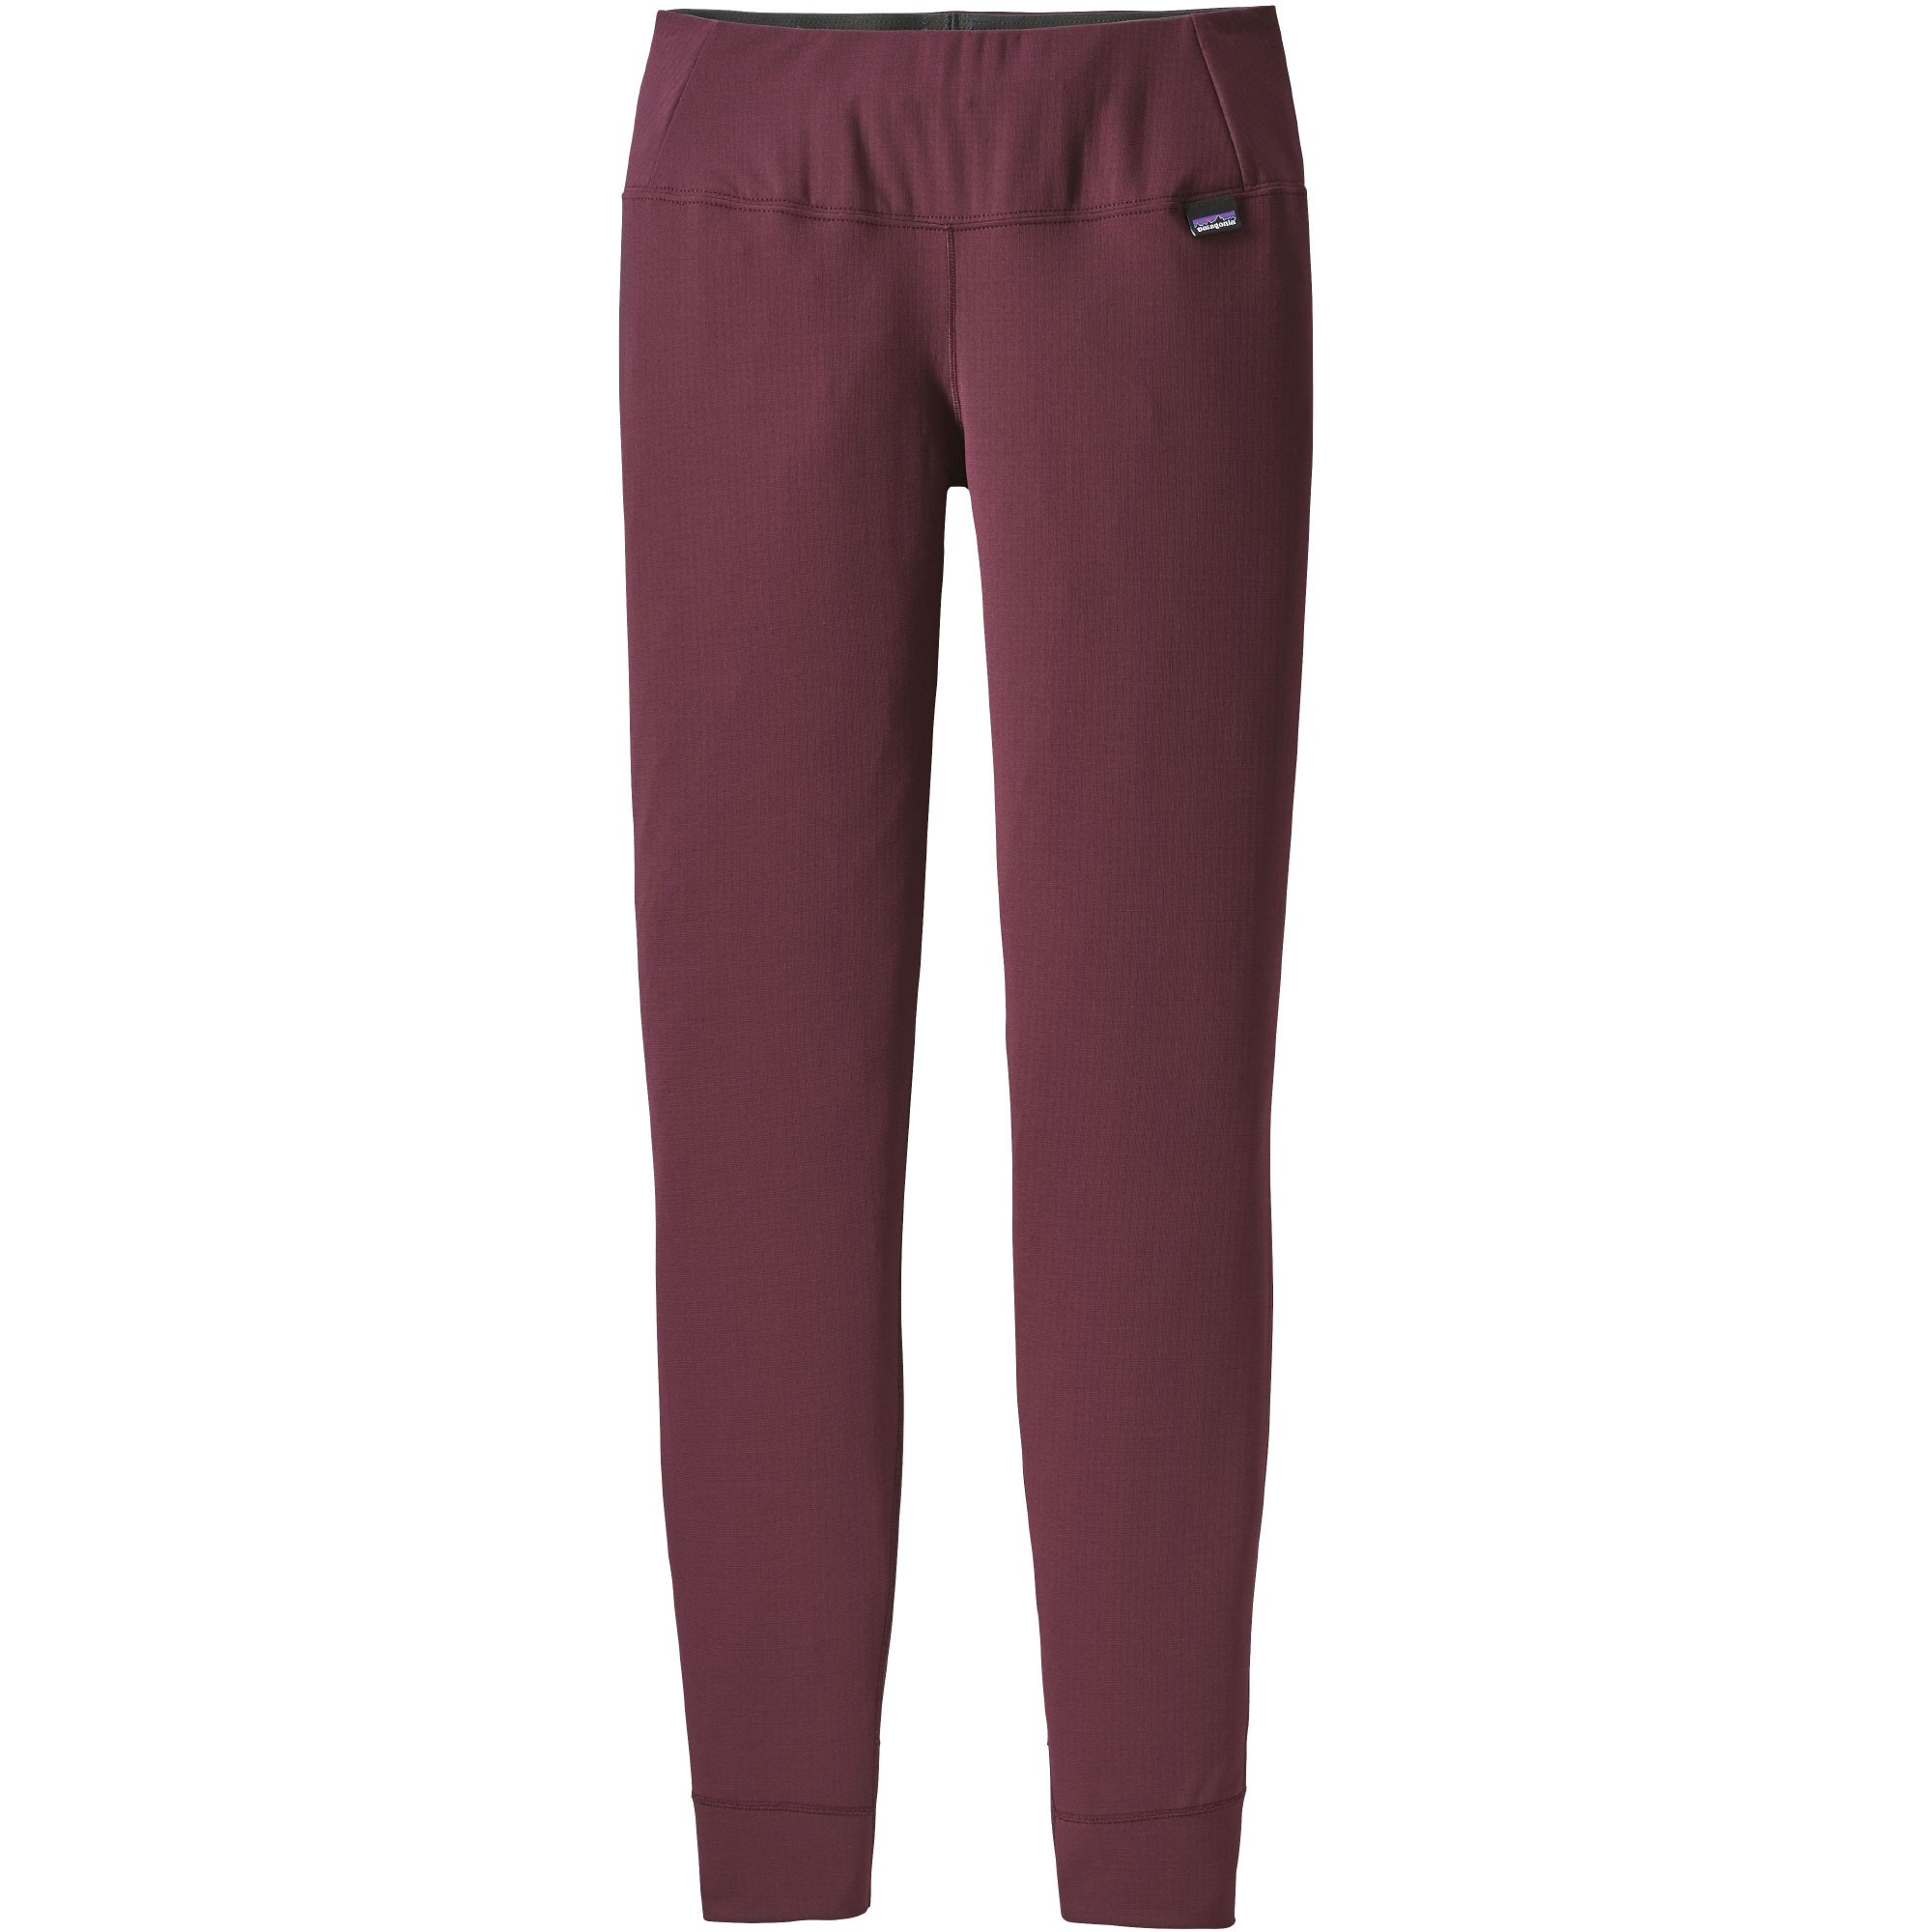 Patagonia Capilene Midweight Women's Baselayer Bottoms - Dark Currant